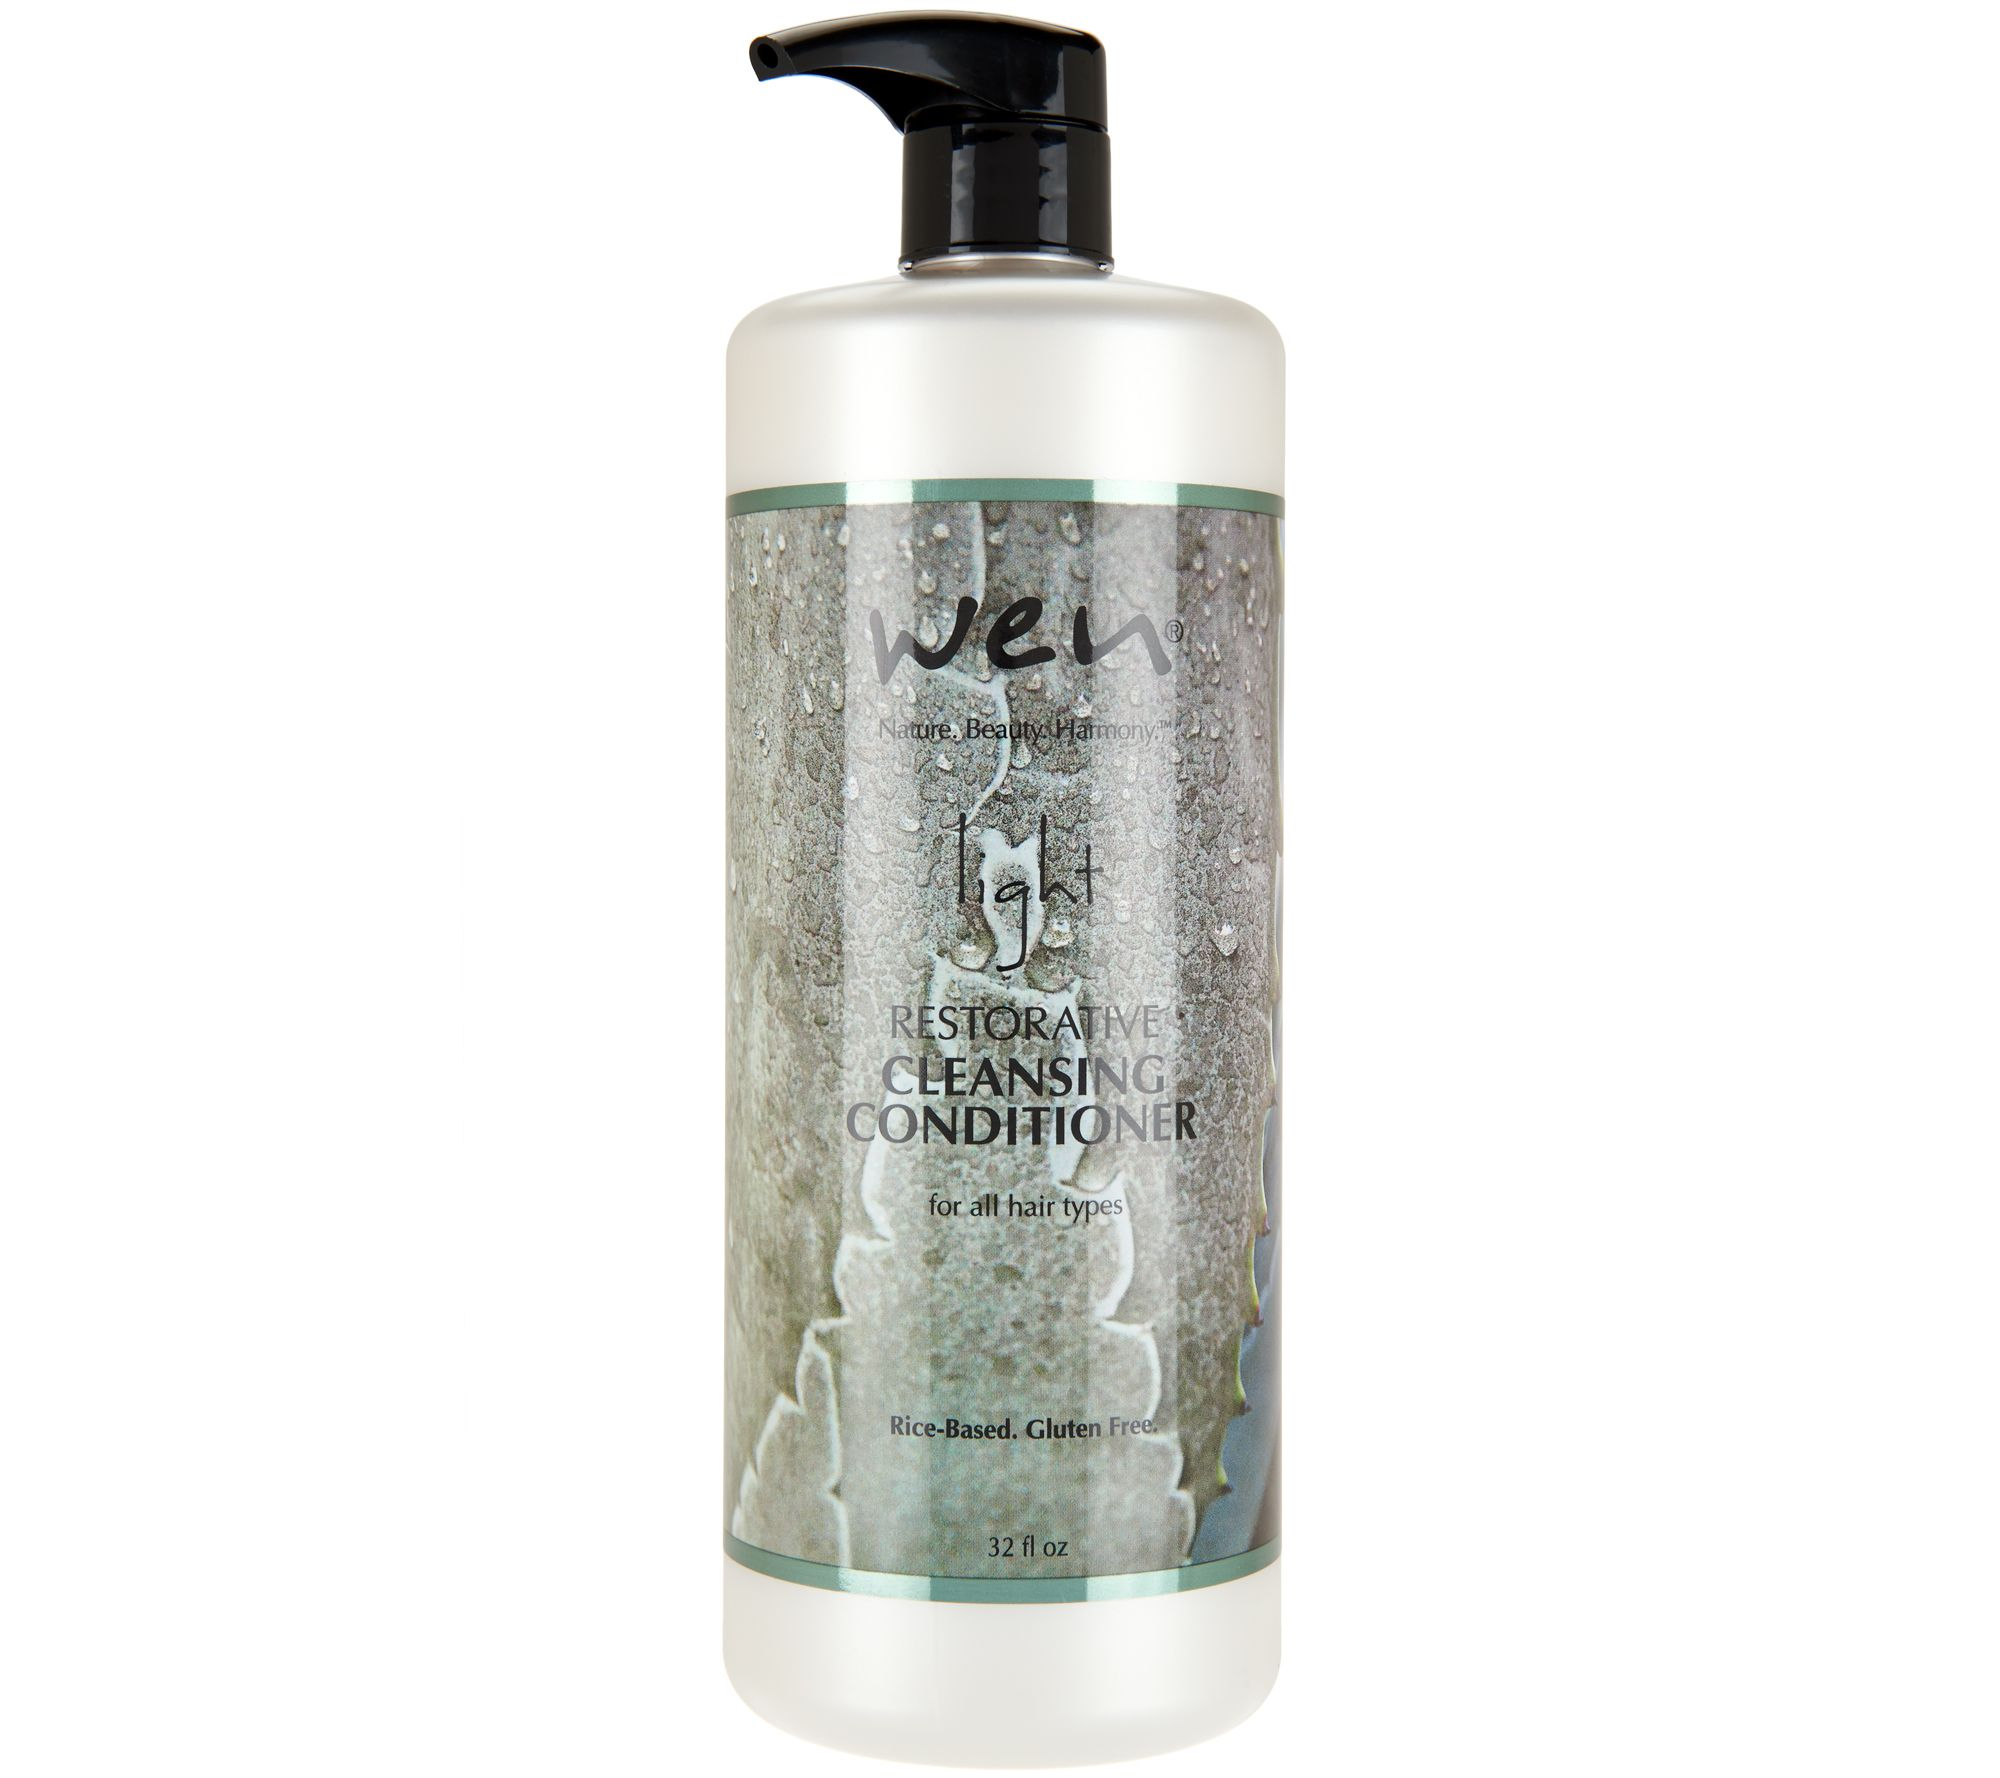 New Customer Qvc Promo Code - Wen by chaz dean light 32 oz cleansing conditioner a293785